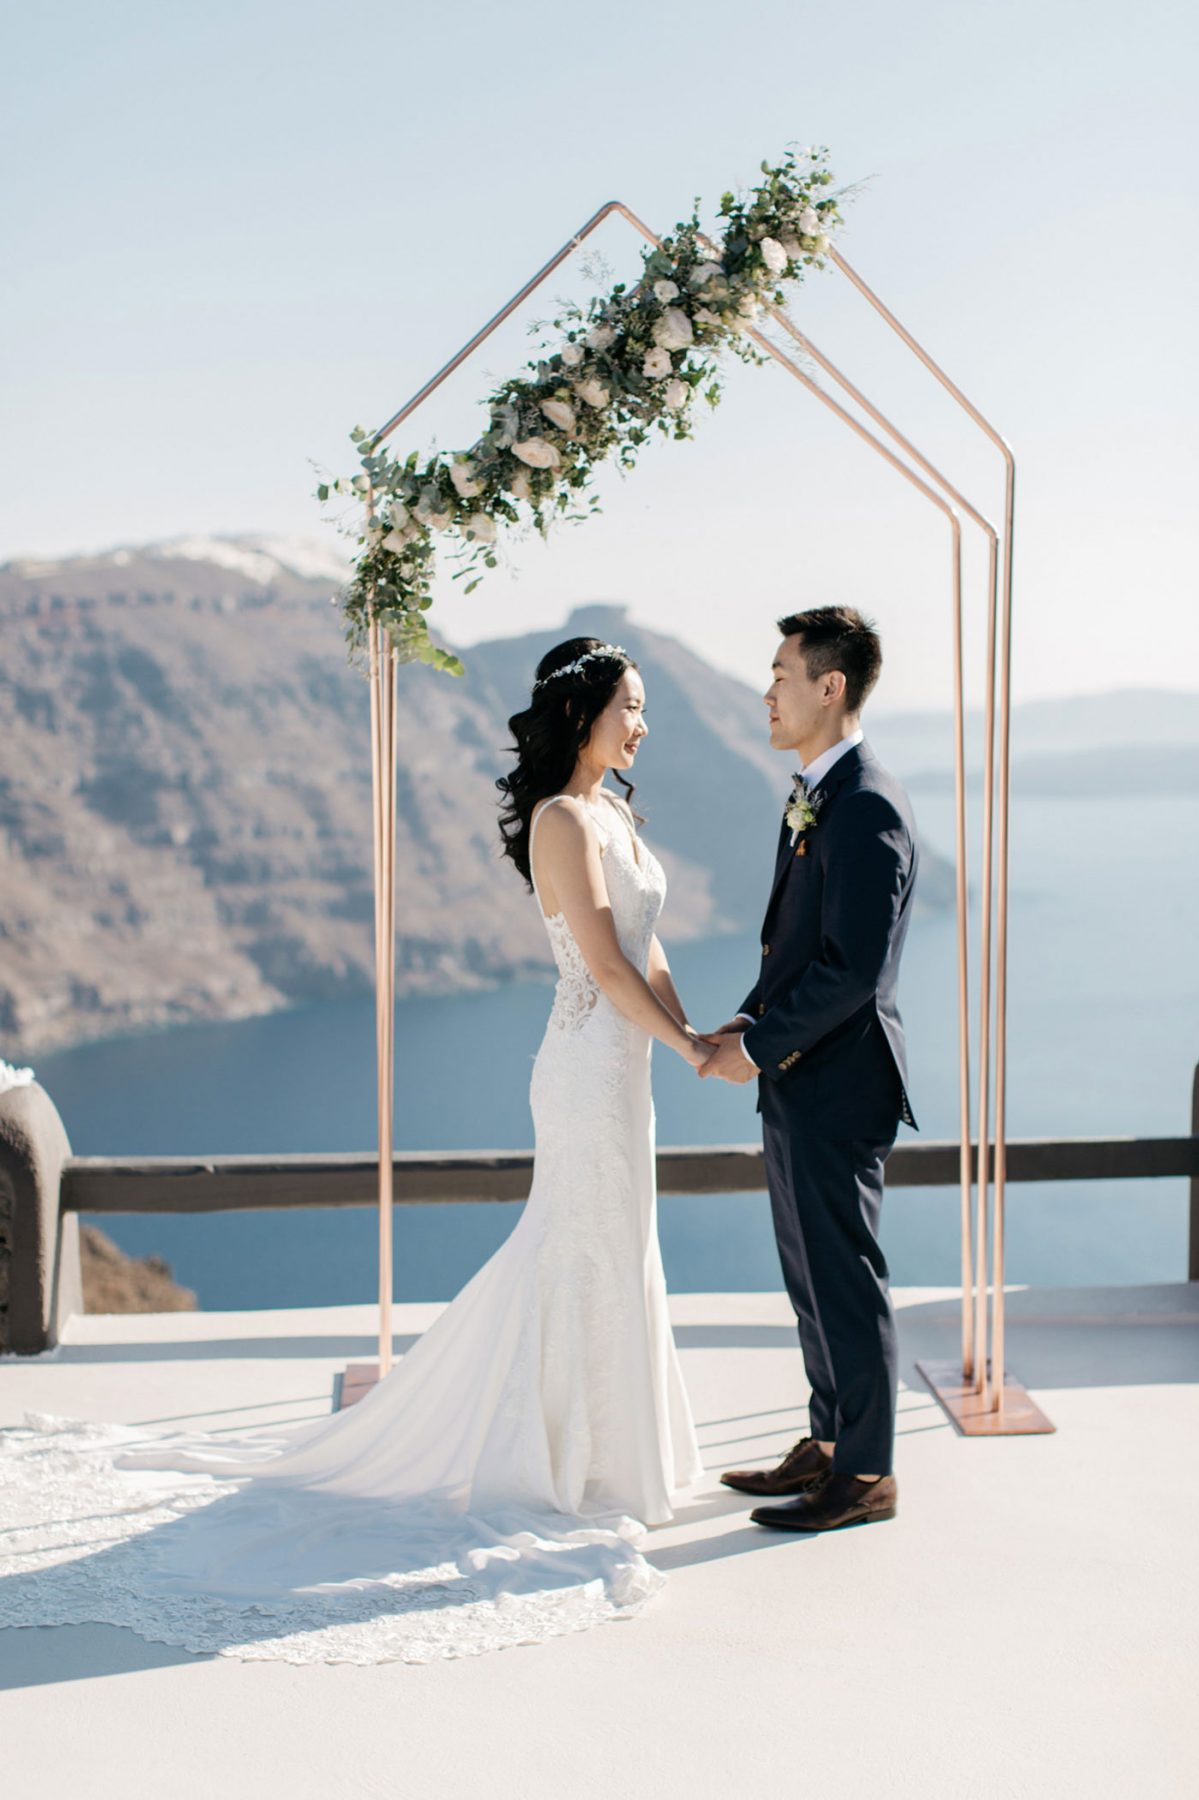 Aenaon Villas Wedding Venue